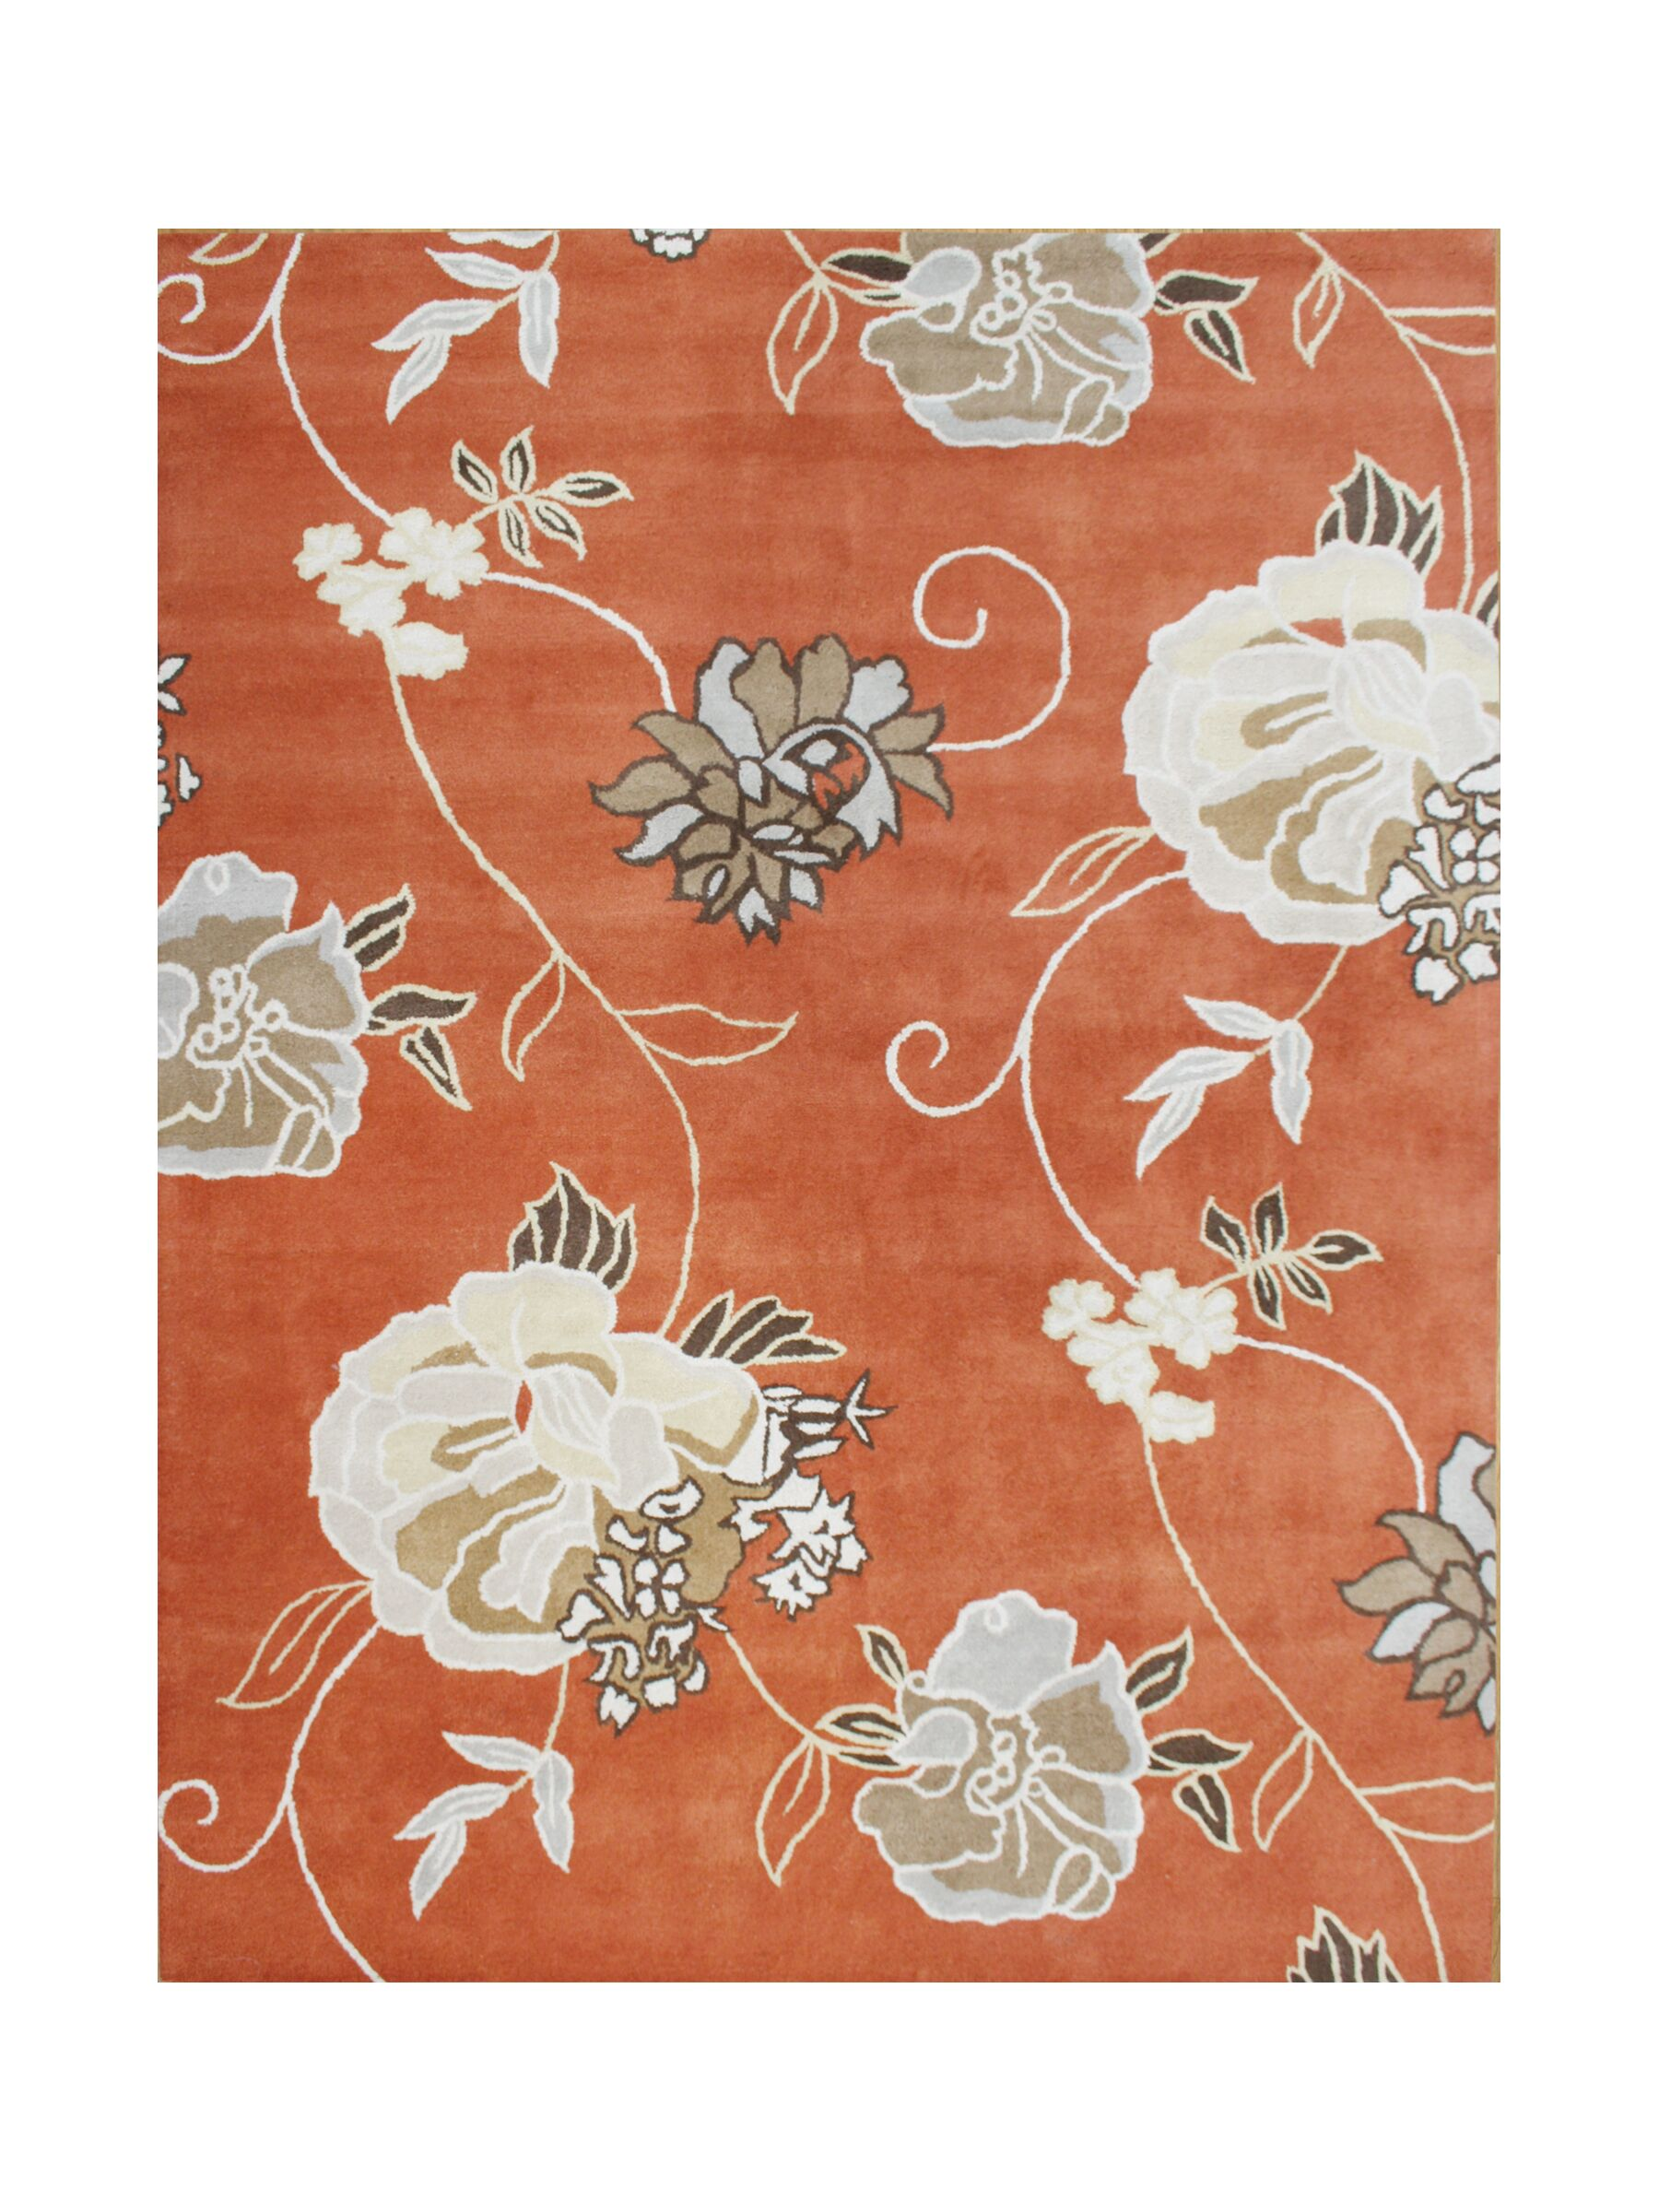 Gilbert Hand-Tufted Rust Area Rug Rug Size: Rectangle 8' x 10'